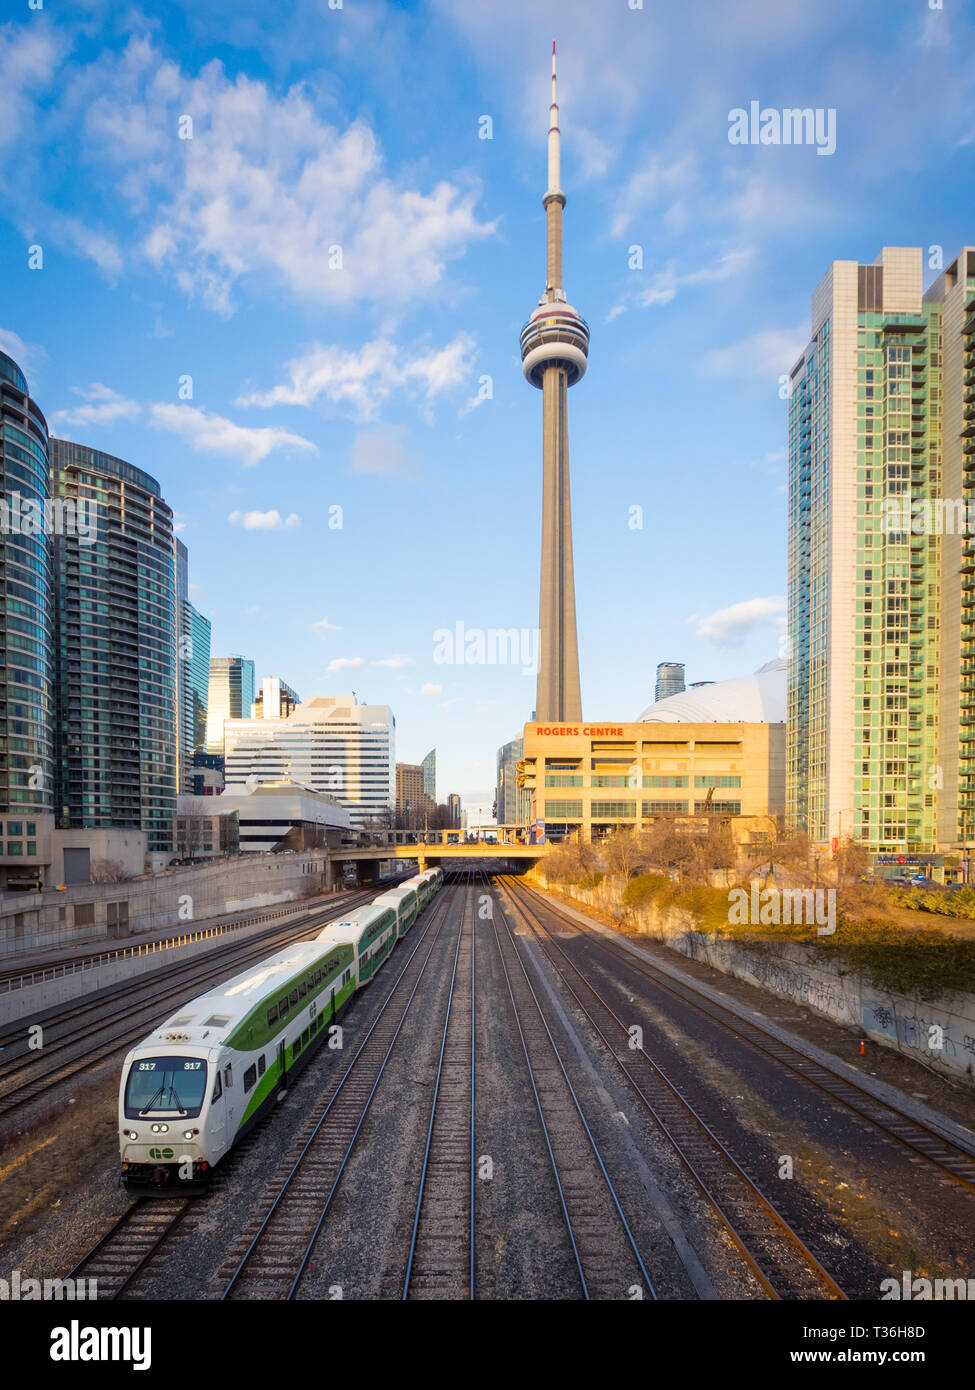 A view of the CN Tower, Rogers Centre (SkyDome), condos, and a GO train leaving downtown Toronto, Ontario, Canada. - Stock Image